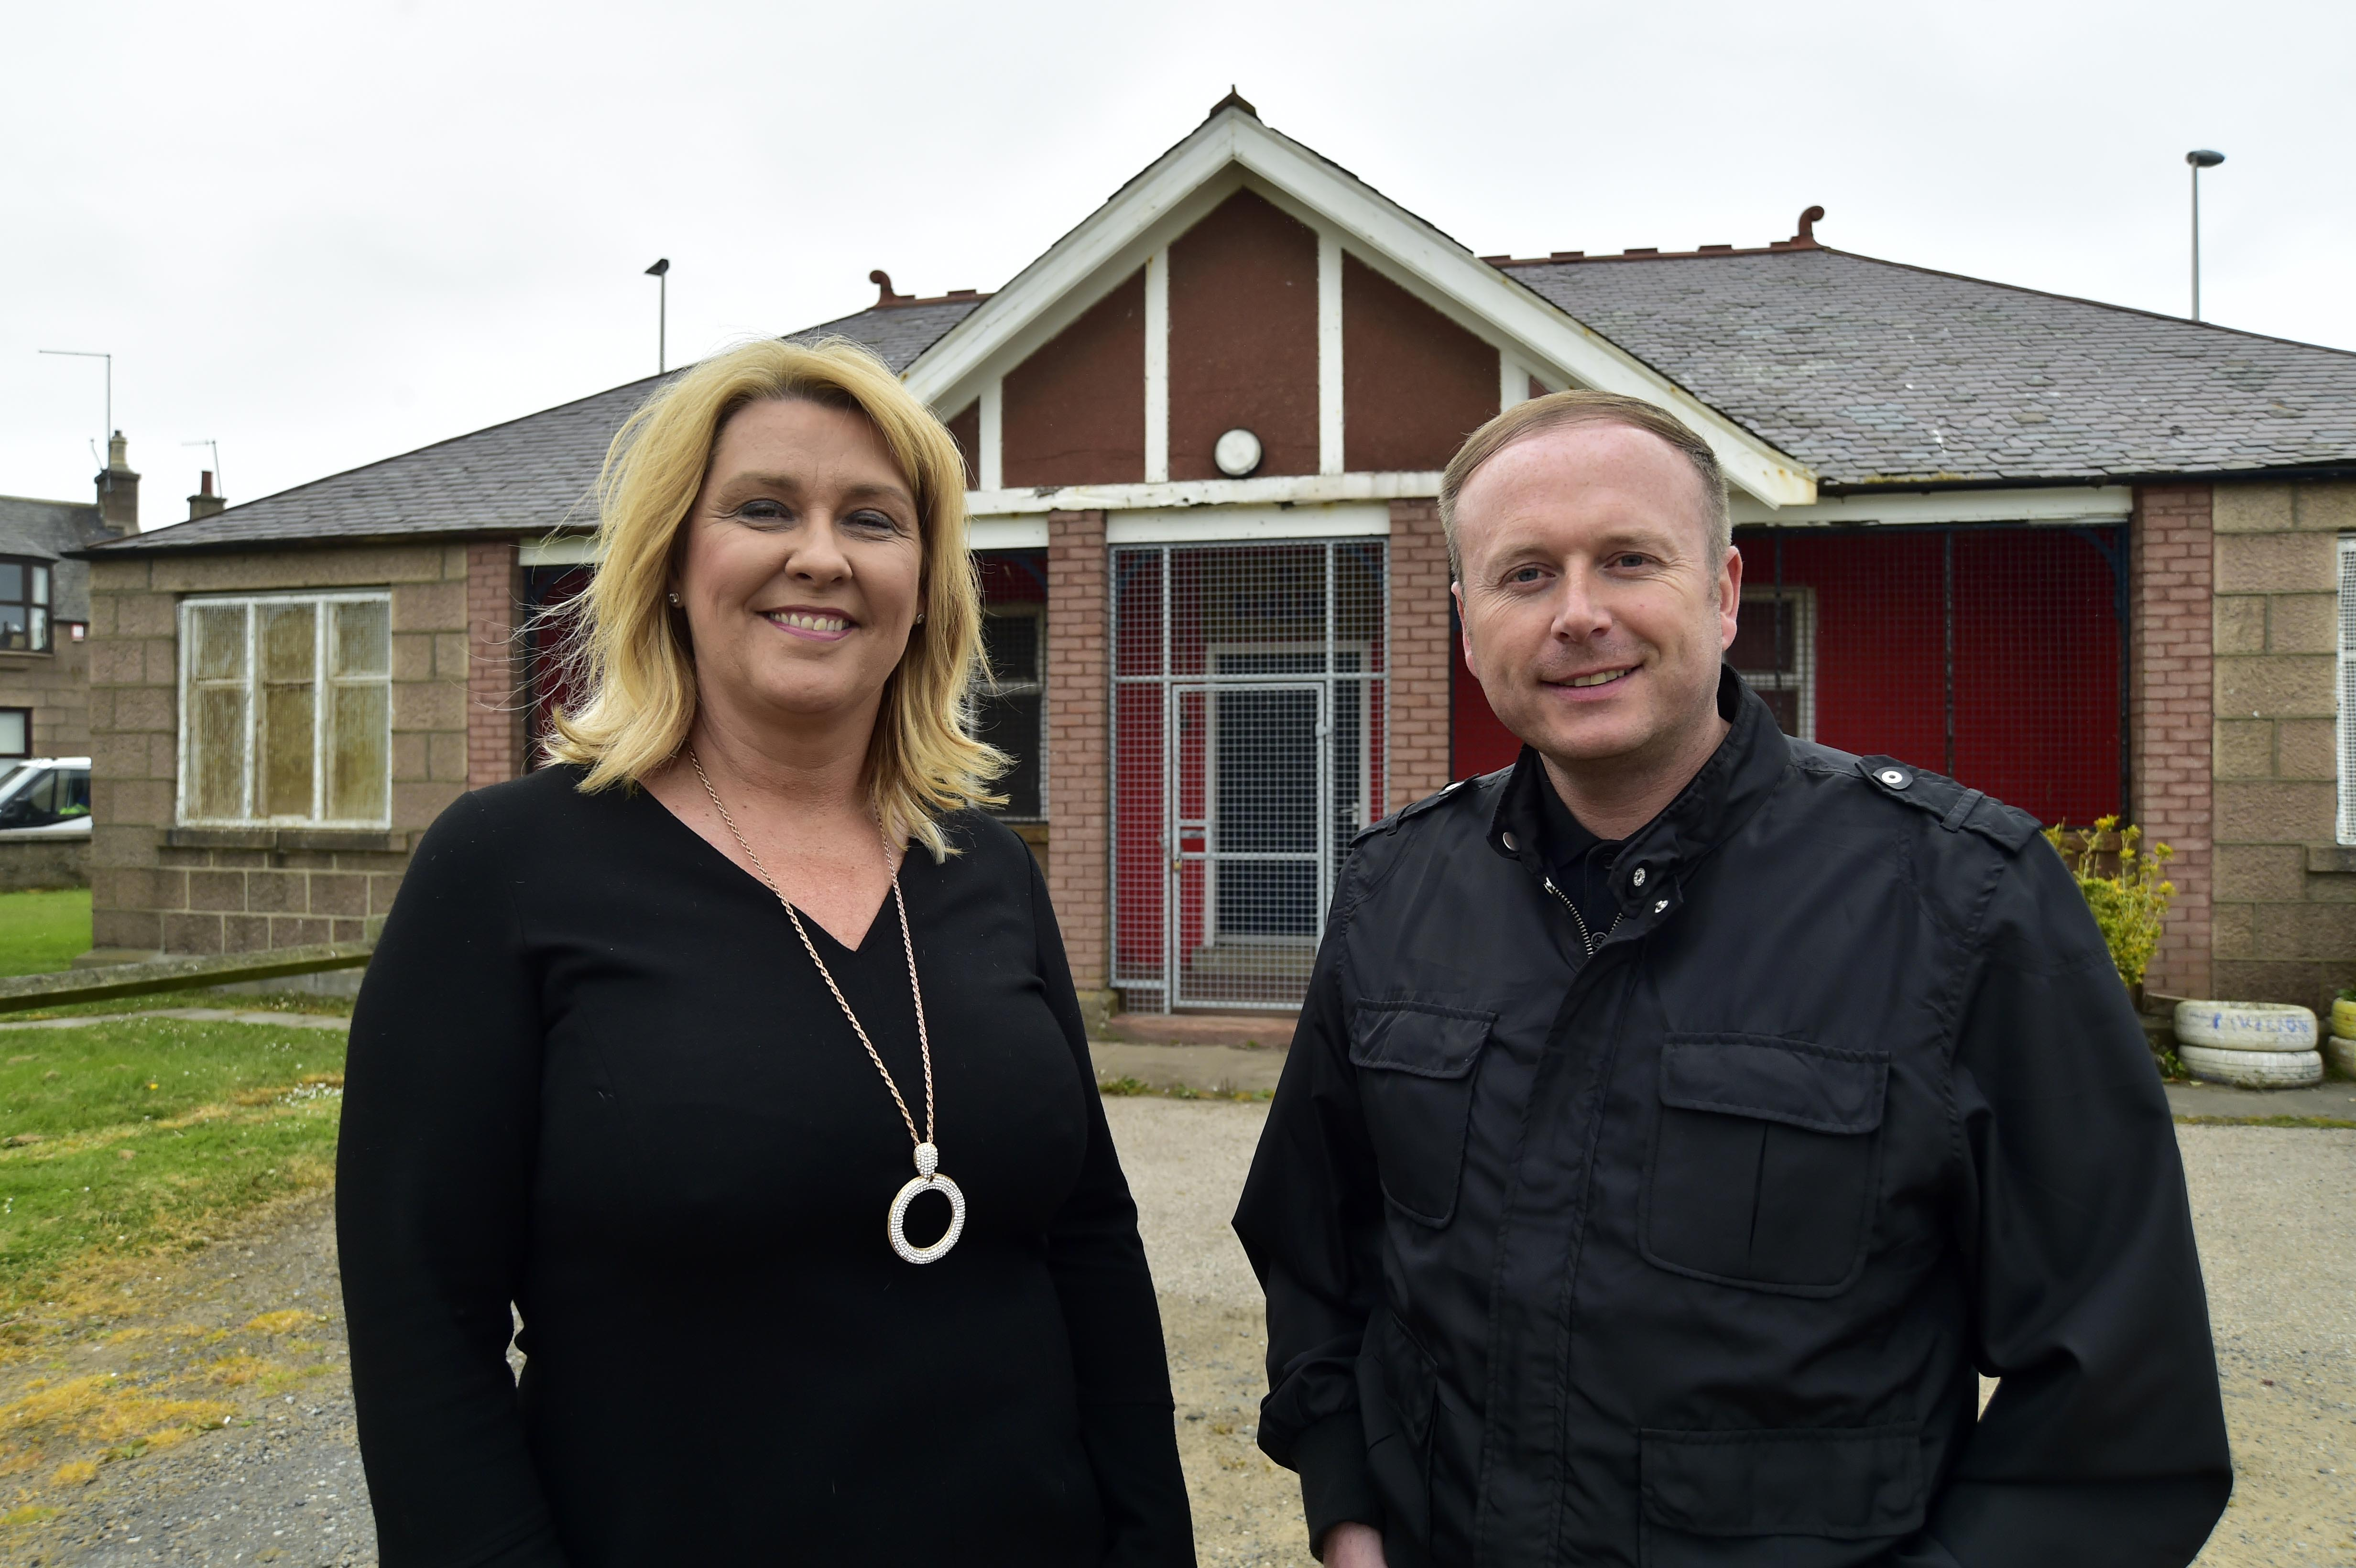 Peterhead Area Community Trust (Pact) chairwoman Dianne Beagrie and committee member Graeme Mackie at the Barclay Park Pavilion